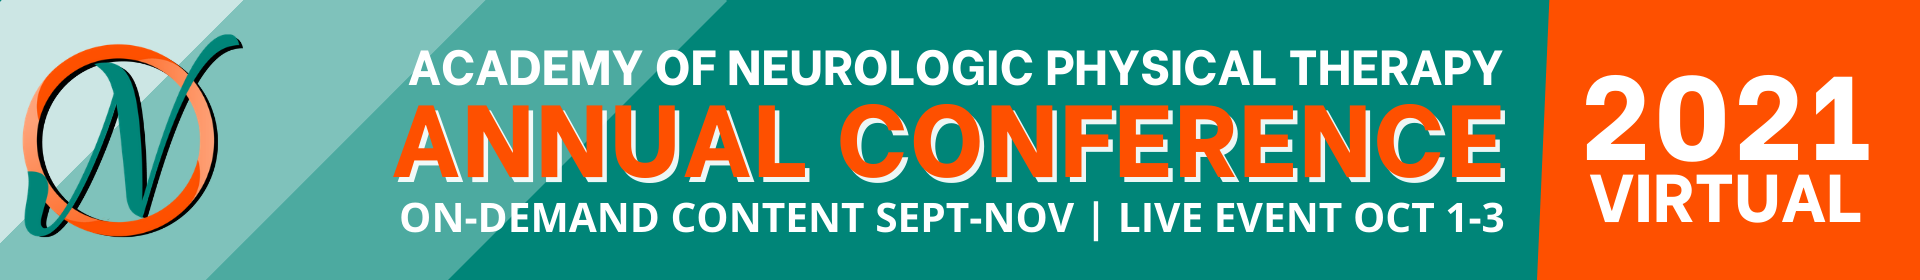 Academy of Neurologic Physical Therapy Annual Conference 2021 Event Banner